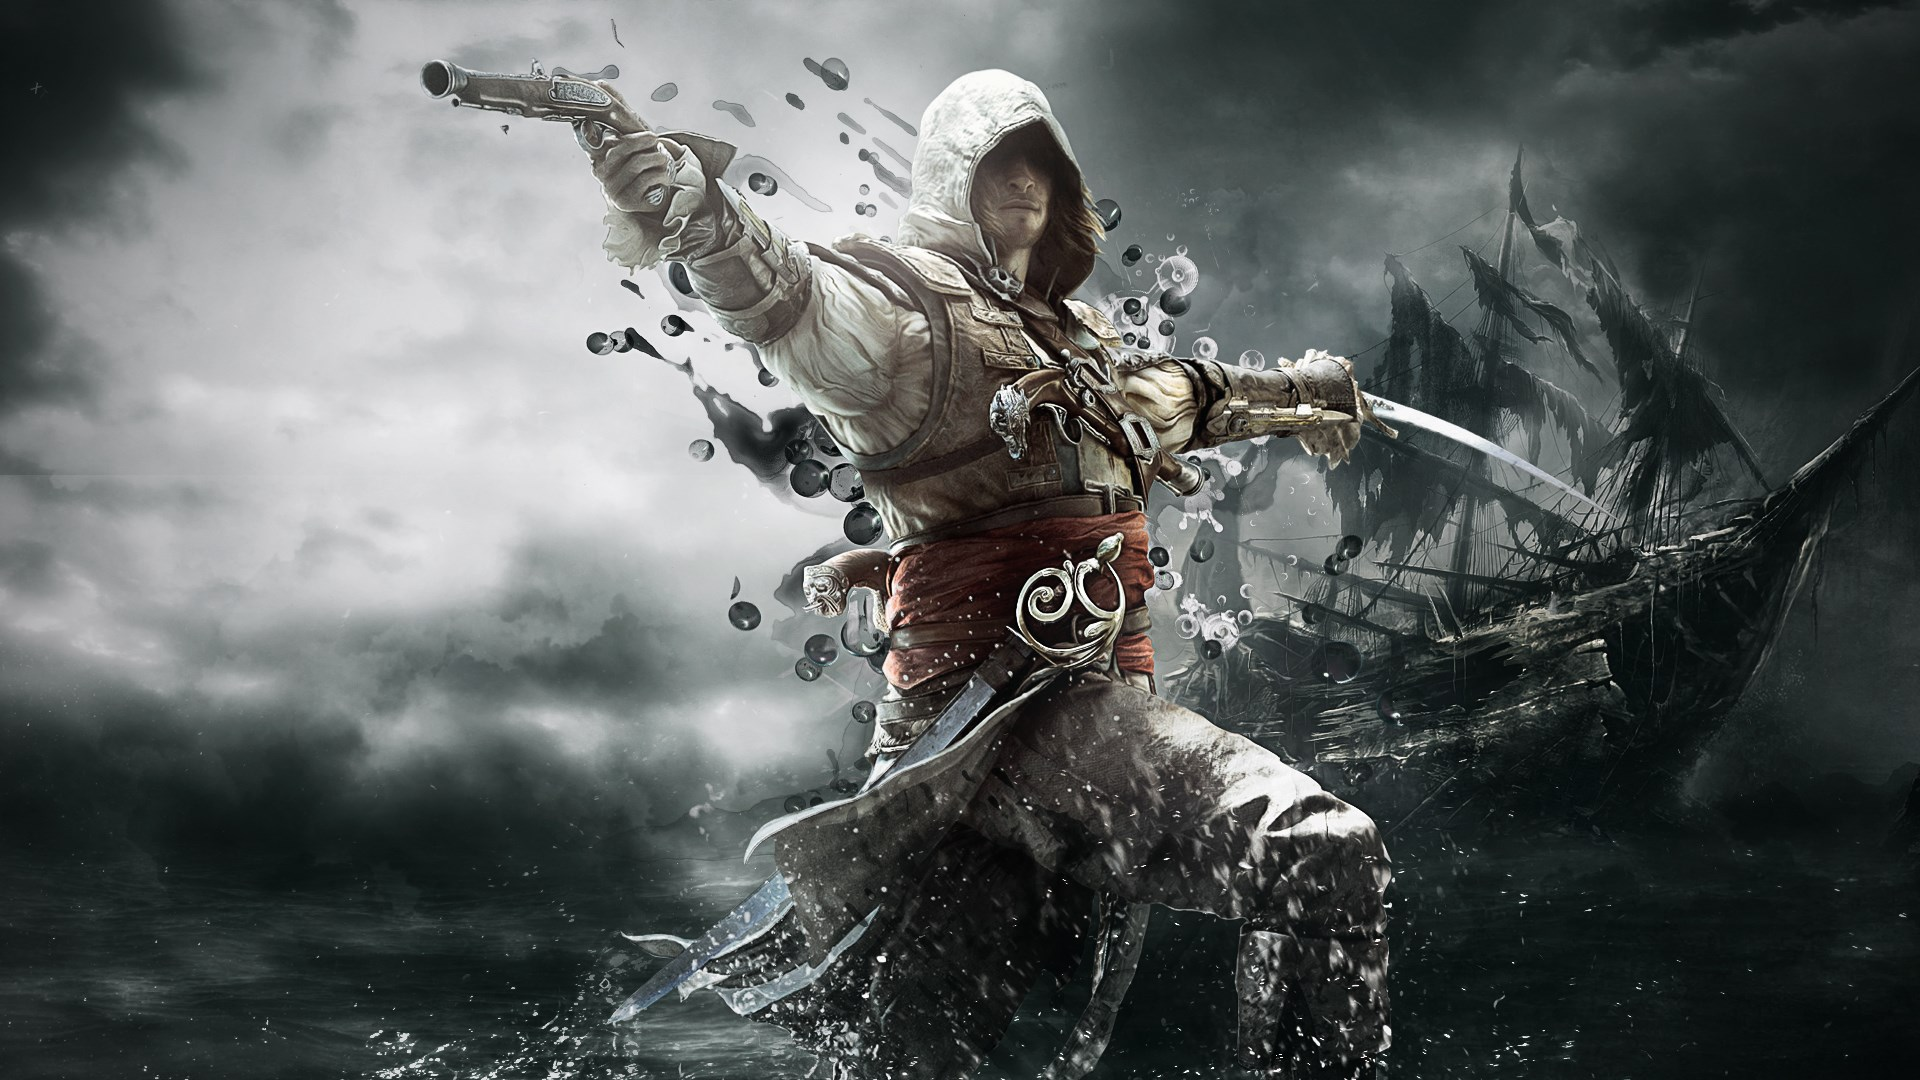 assassins creed wallpaper 1080p